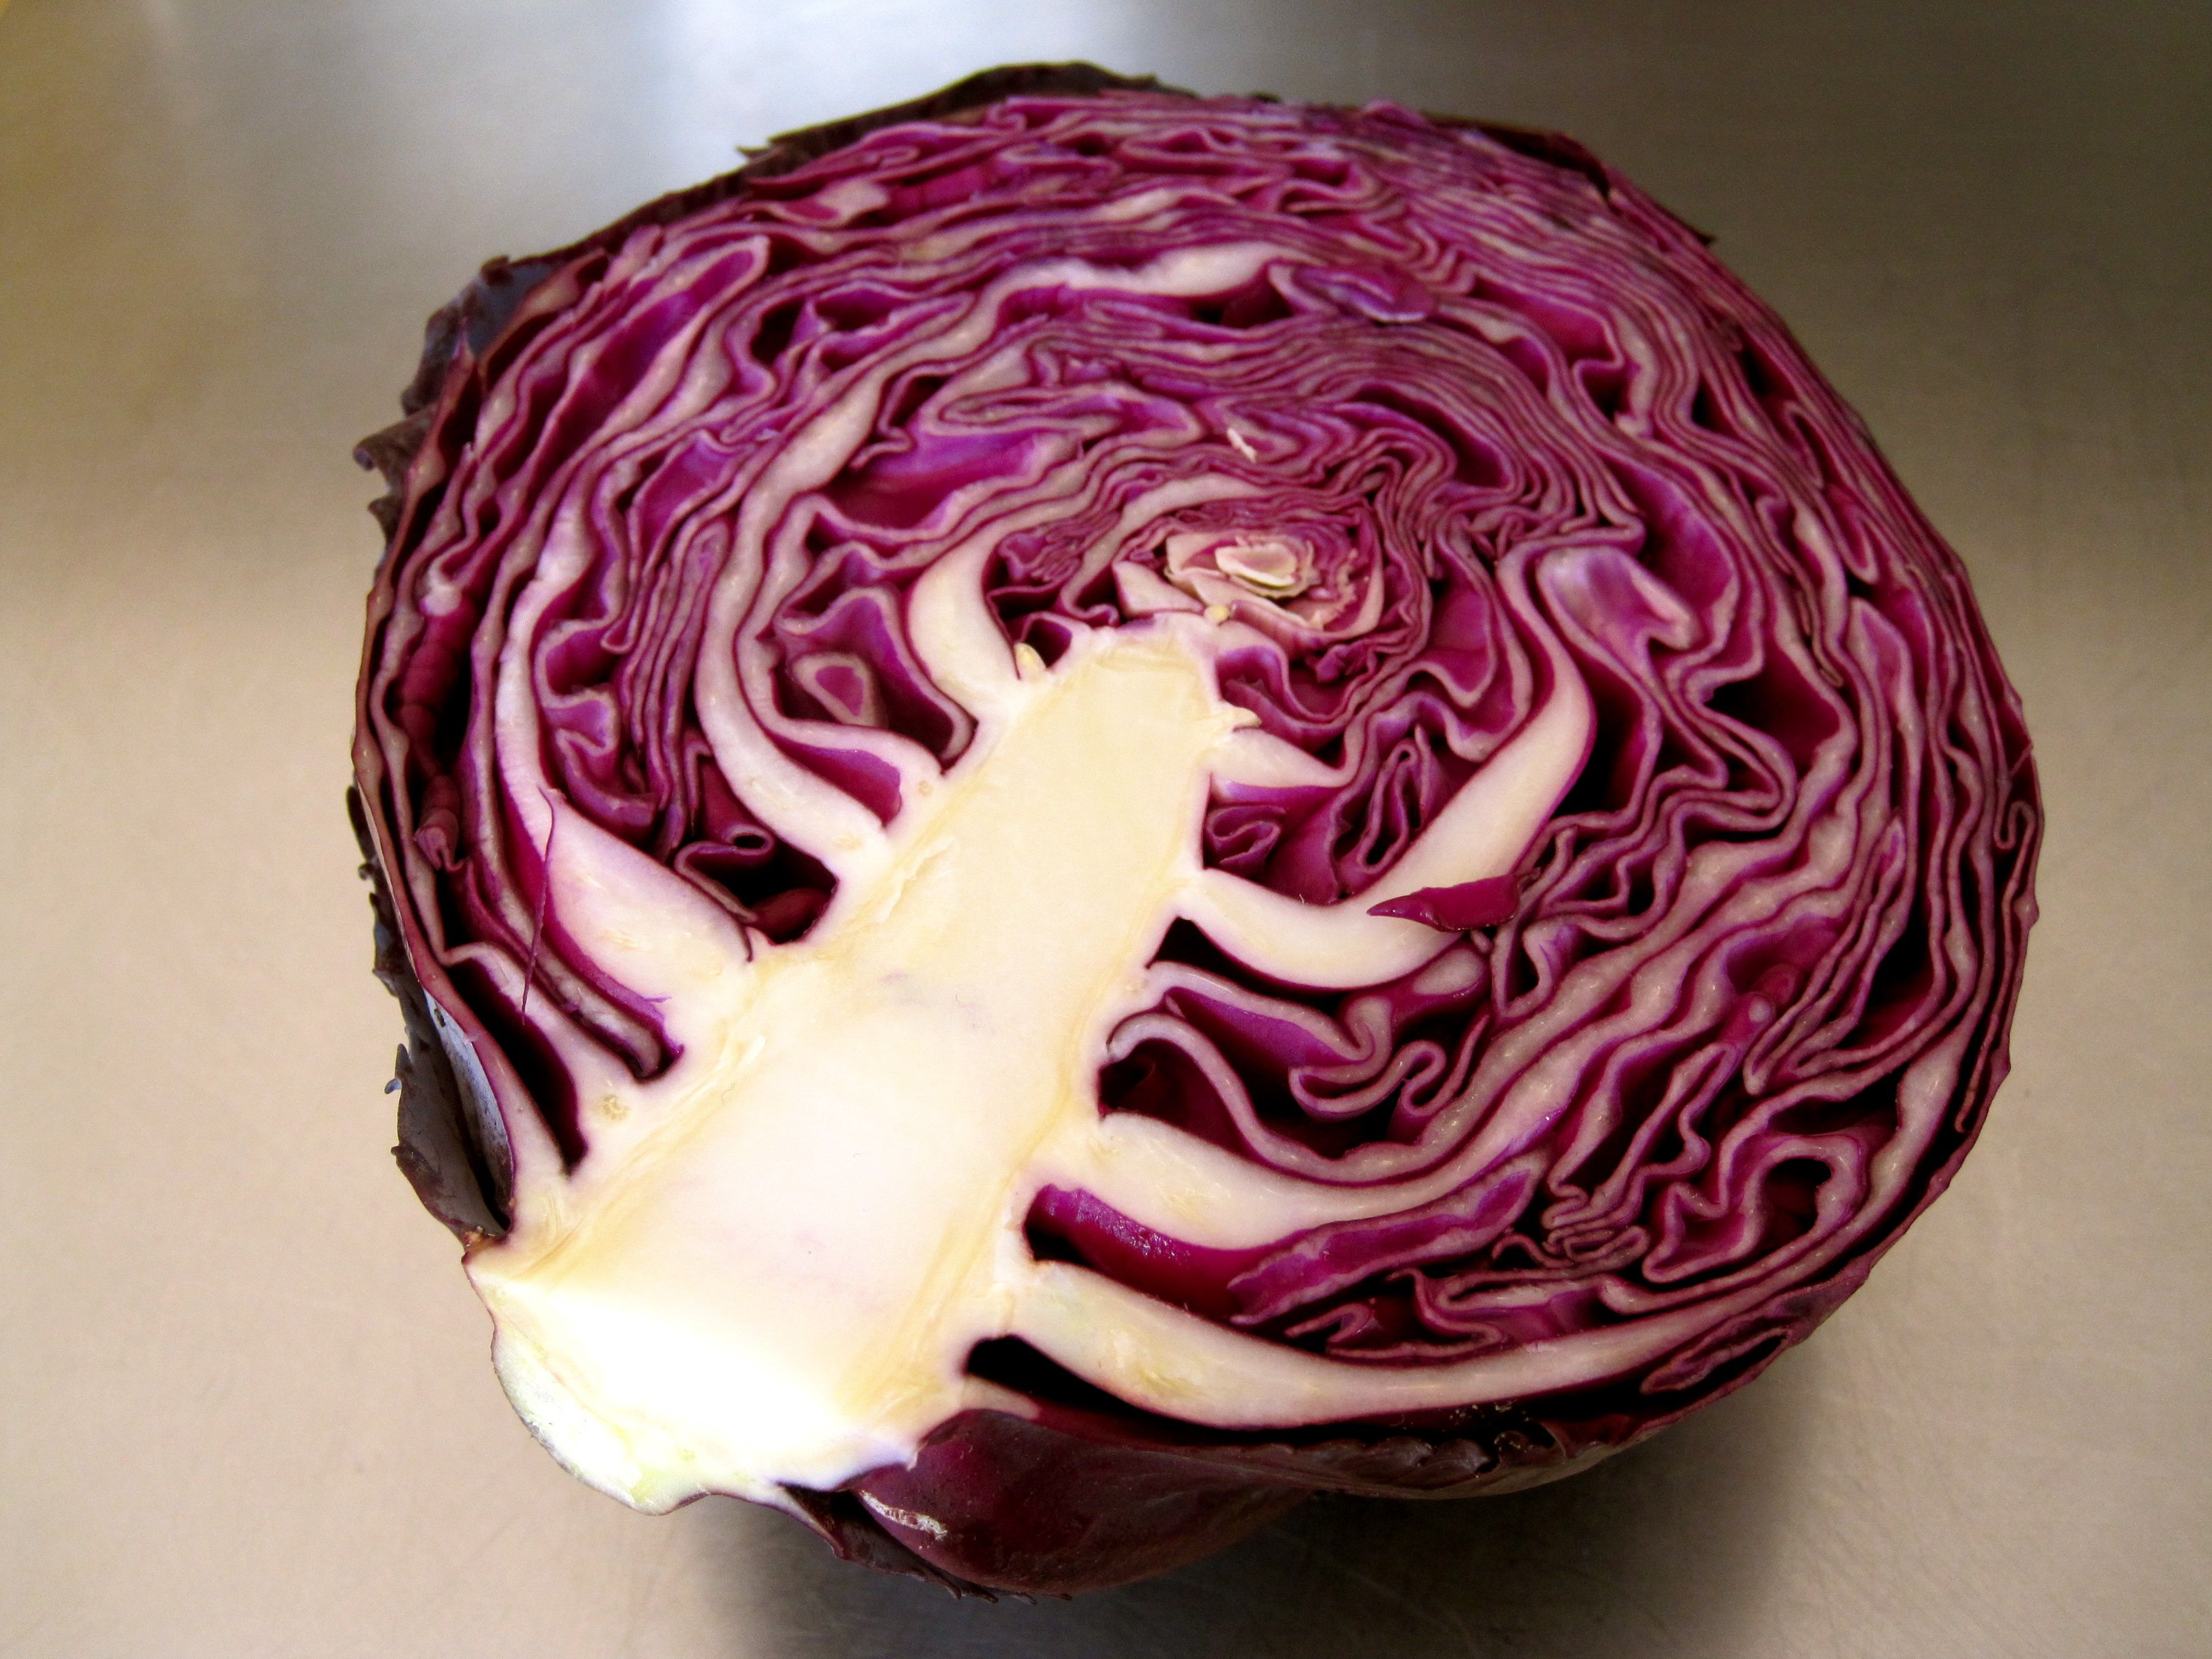 guacamole and pickled red cabbage